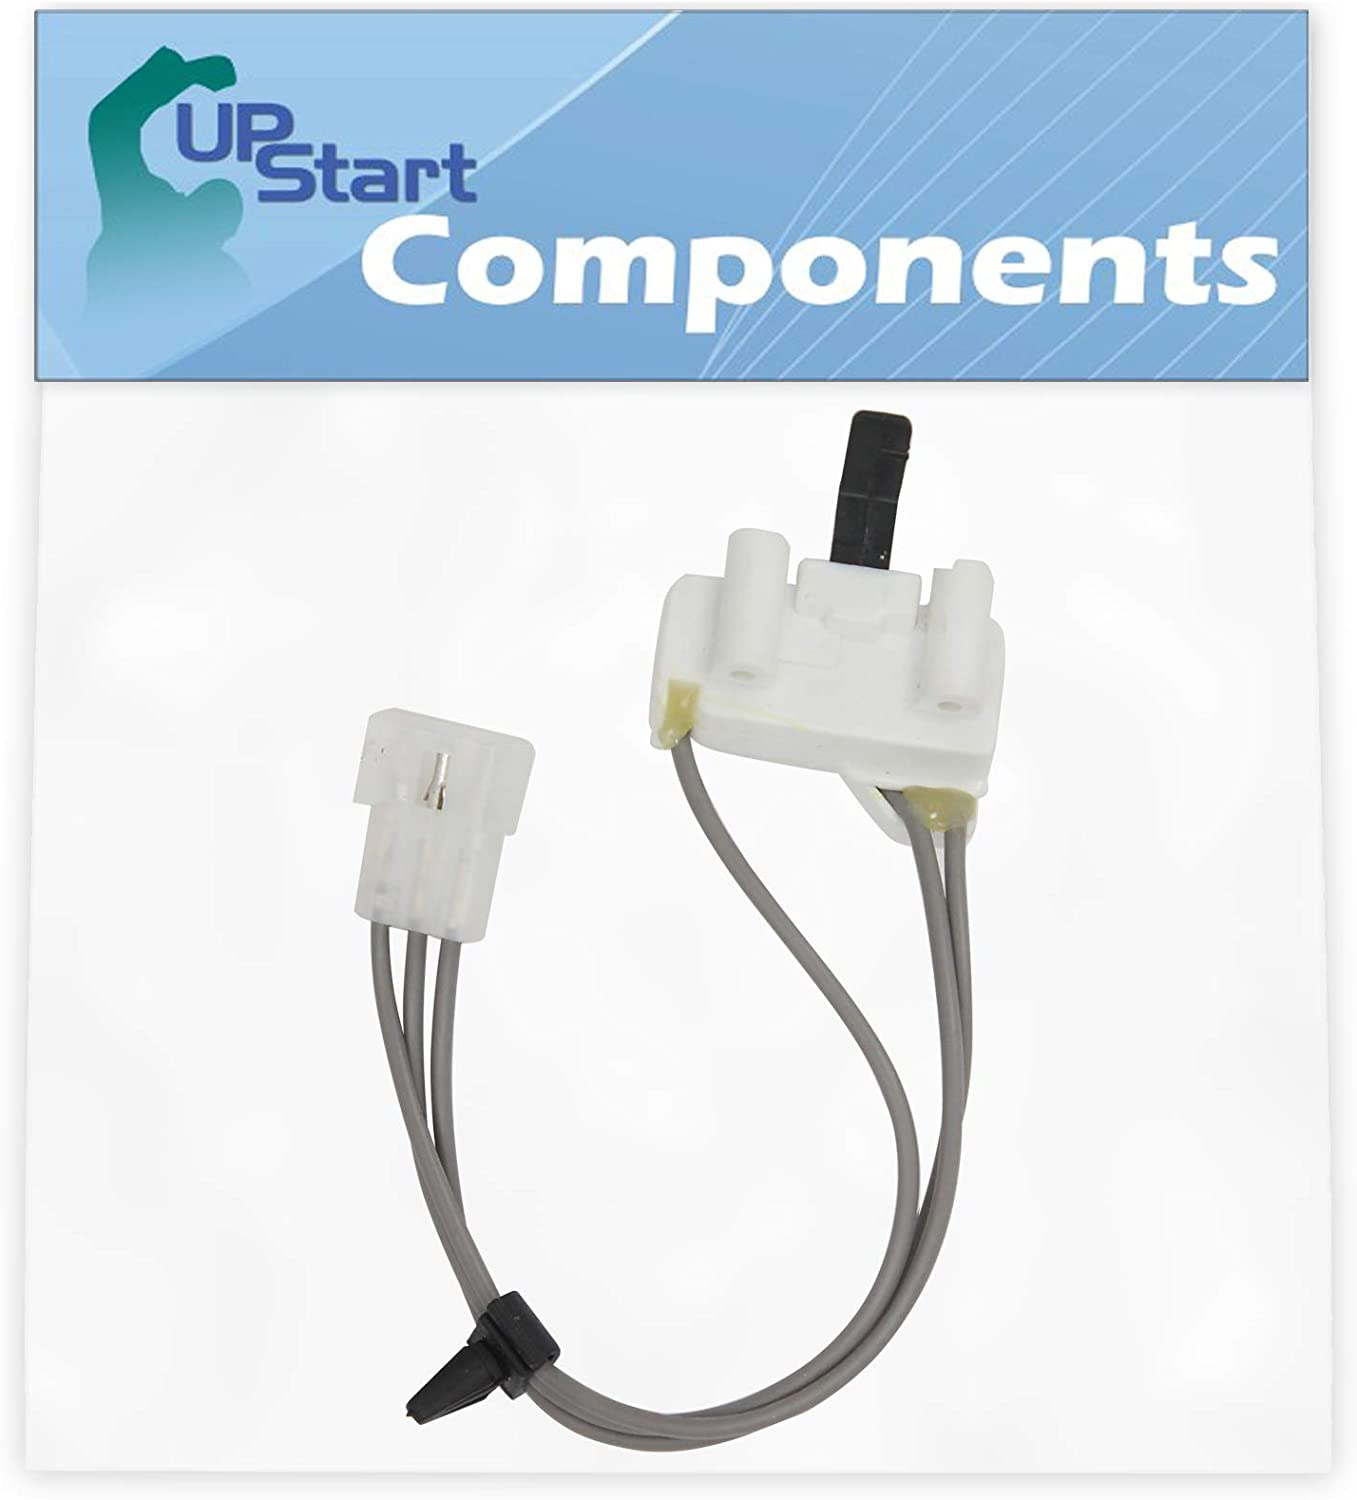 3406105 Dryer Door Switch Replacement for Whirlpool, Roper & Estate Dryers - Compatible with Part Number AP6008560, 3405104, 3405105, 3406104, PS11741700